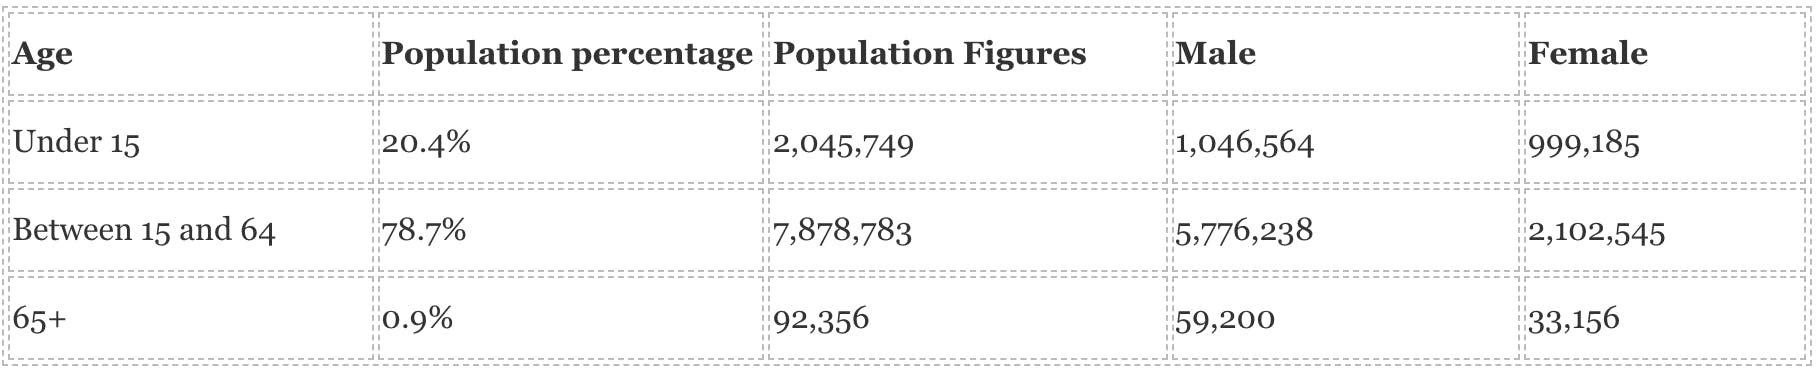 UAE age wise population for 2021